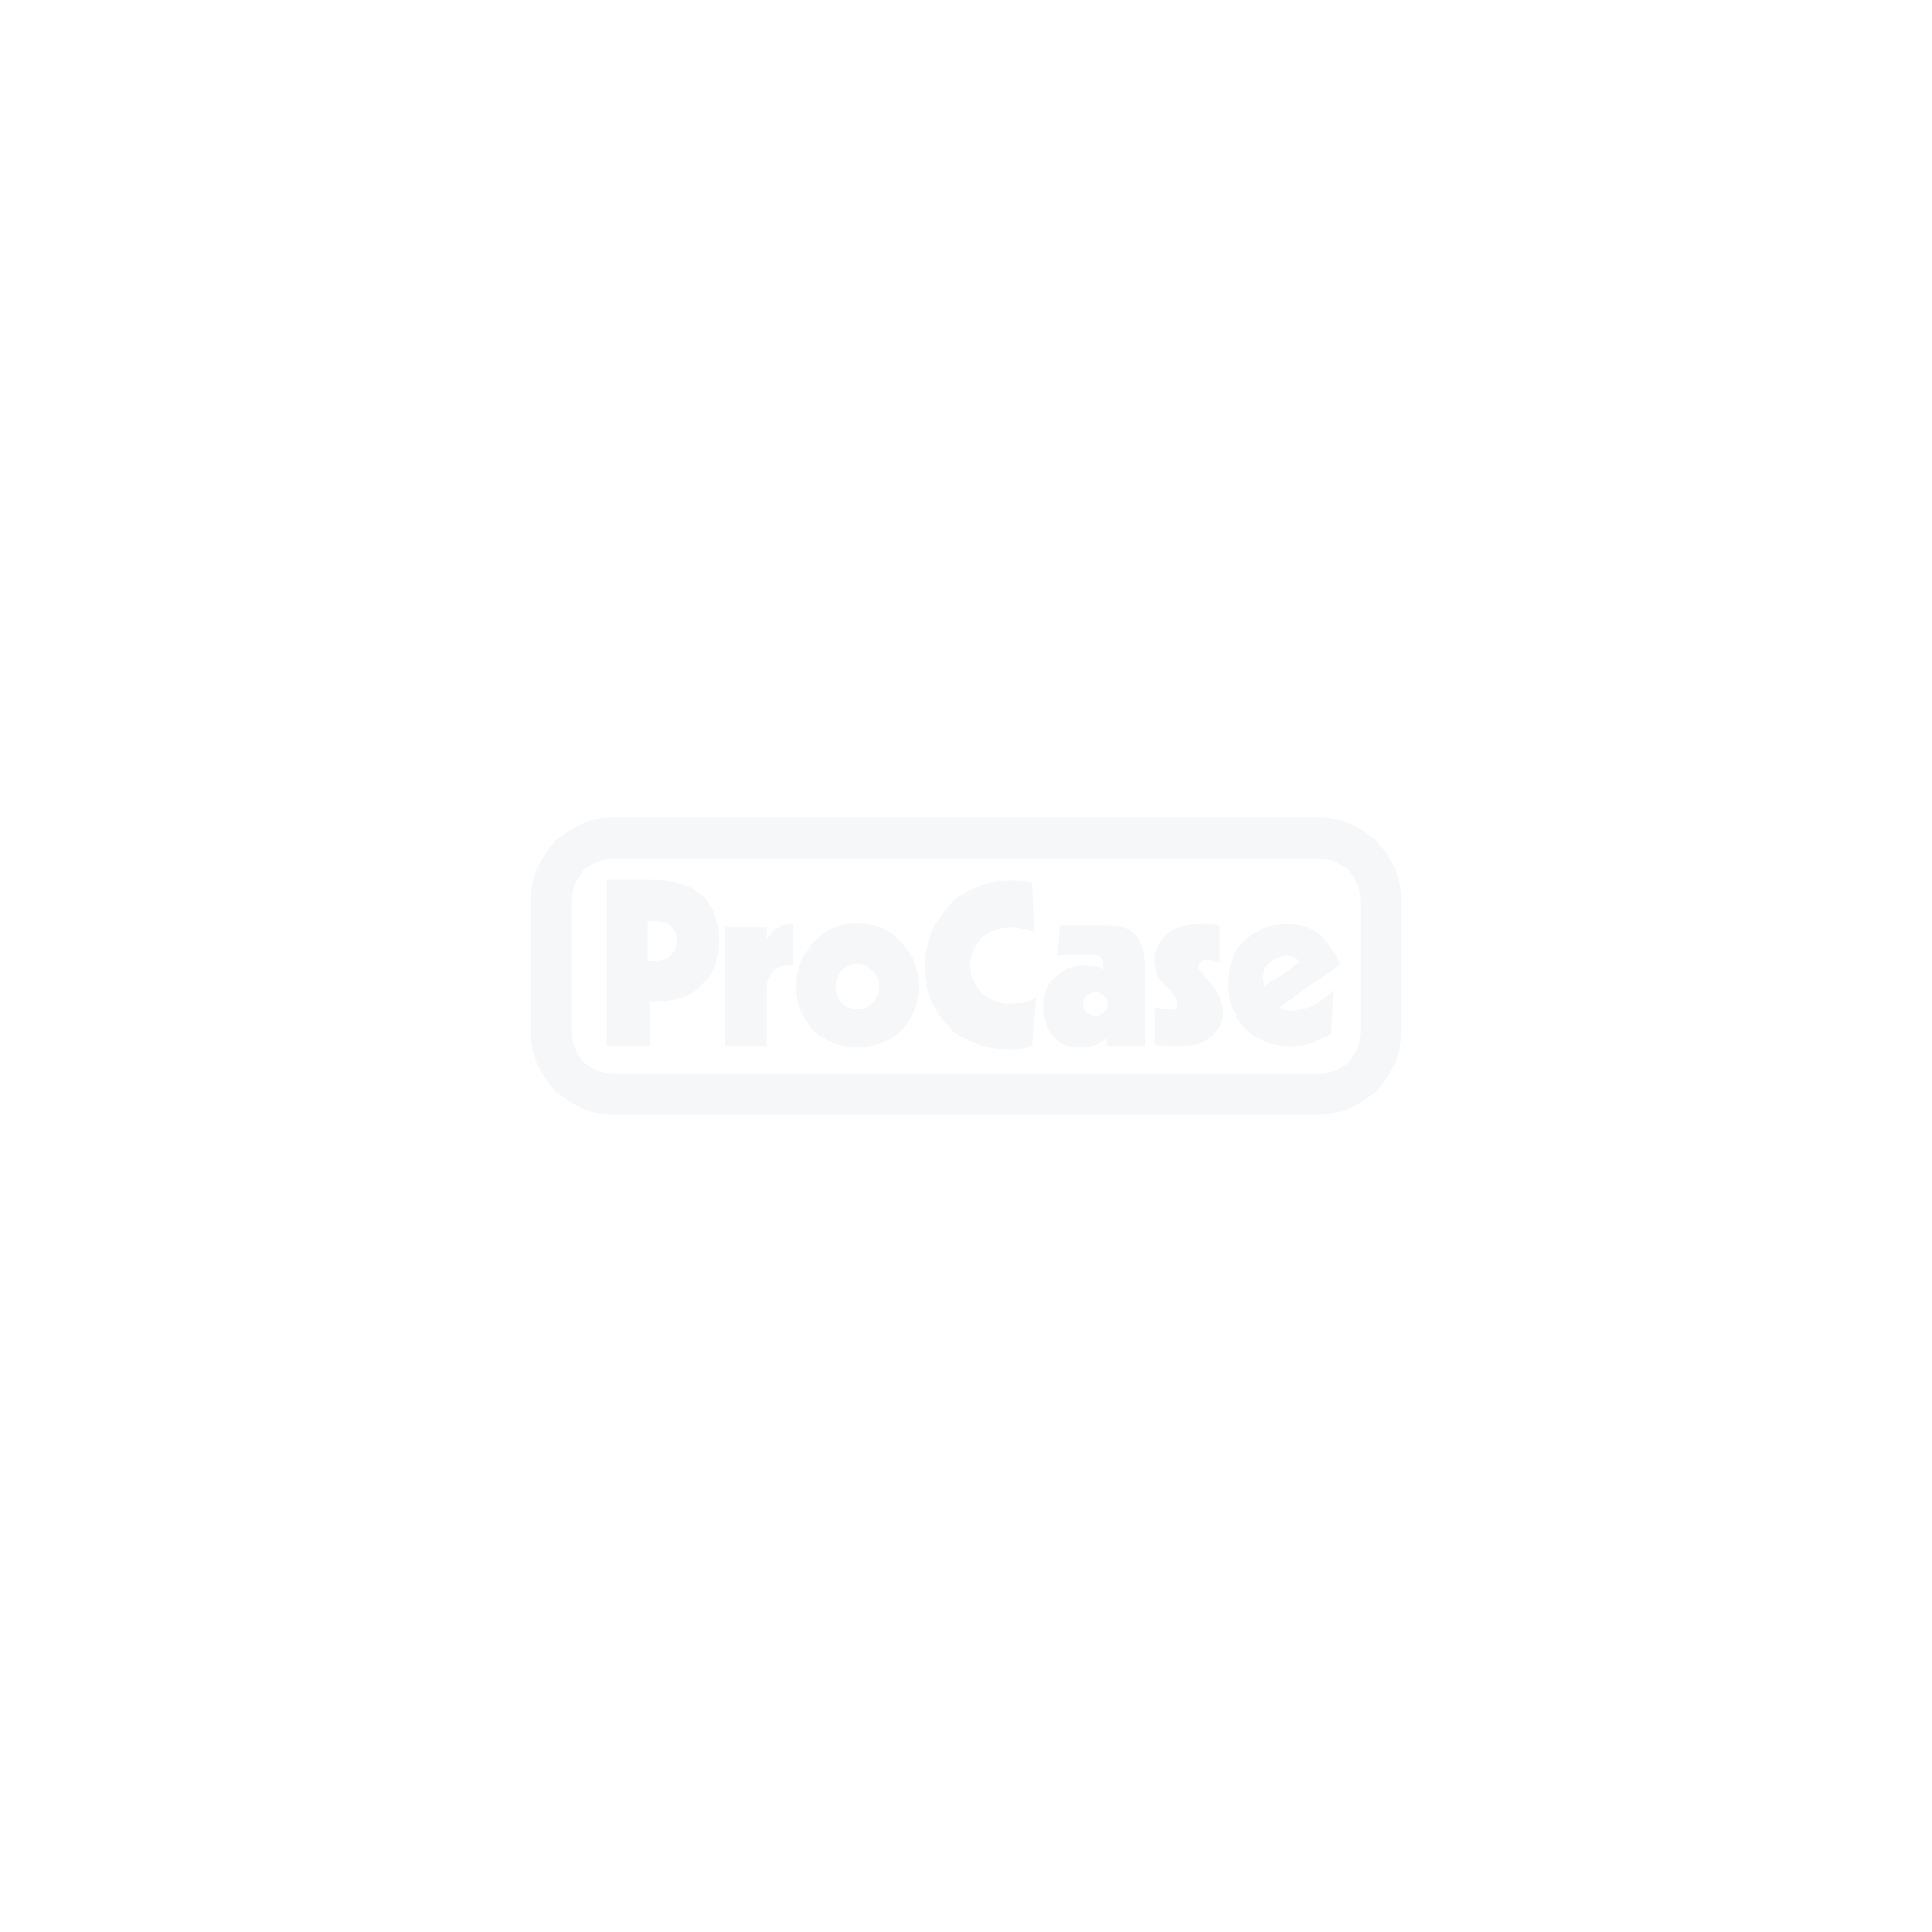 Flightcase für Eurolite LED TSL-200 Scan COB